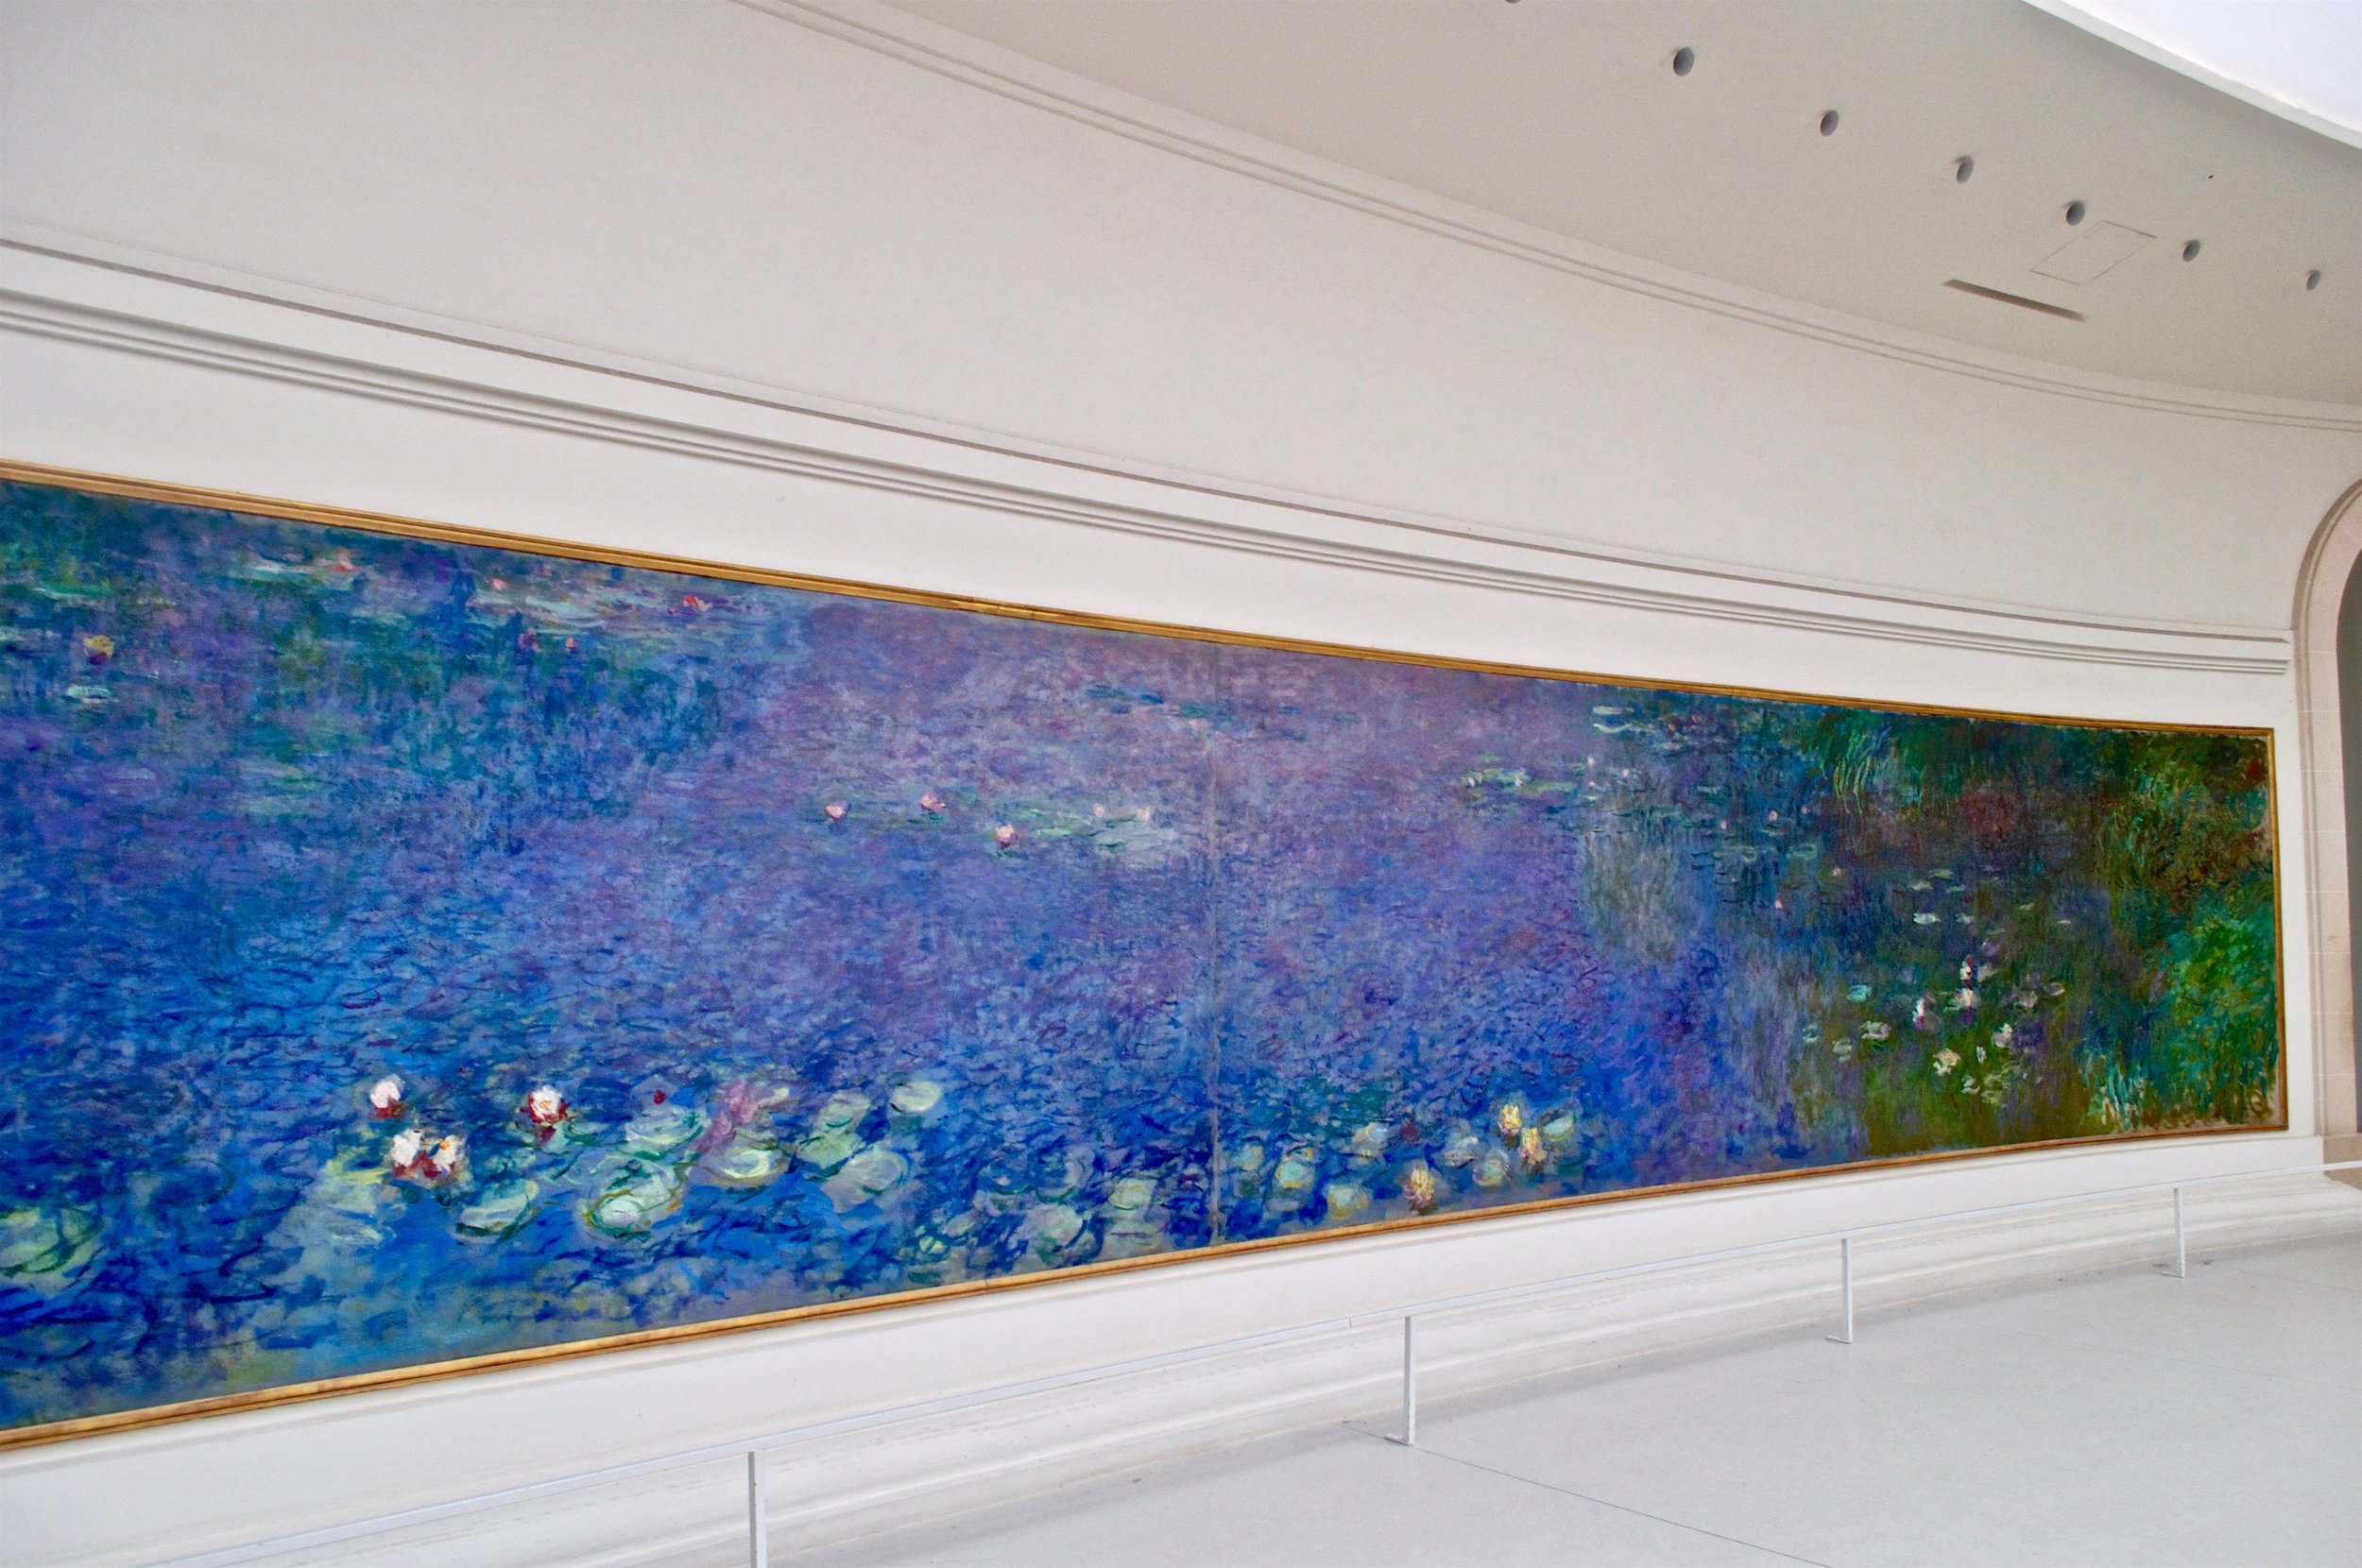 Water Lily Paintings at Musée National de l'Orangerie